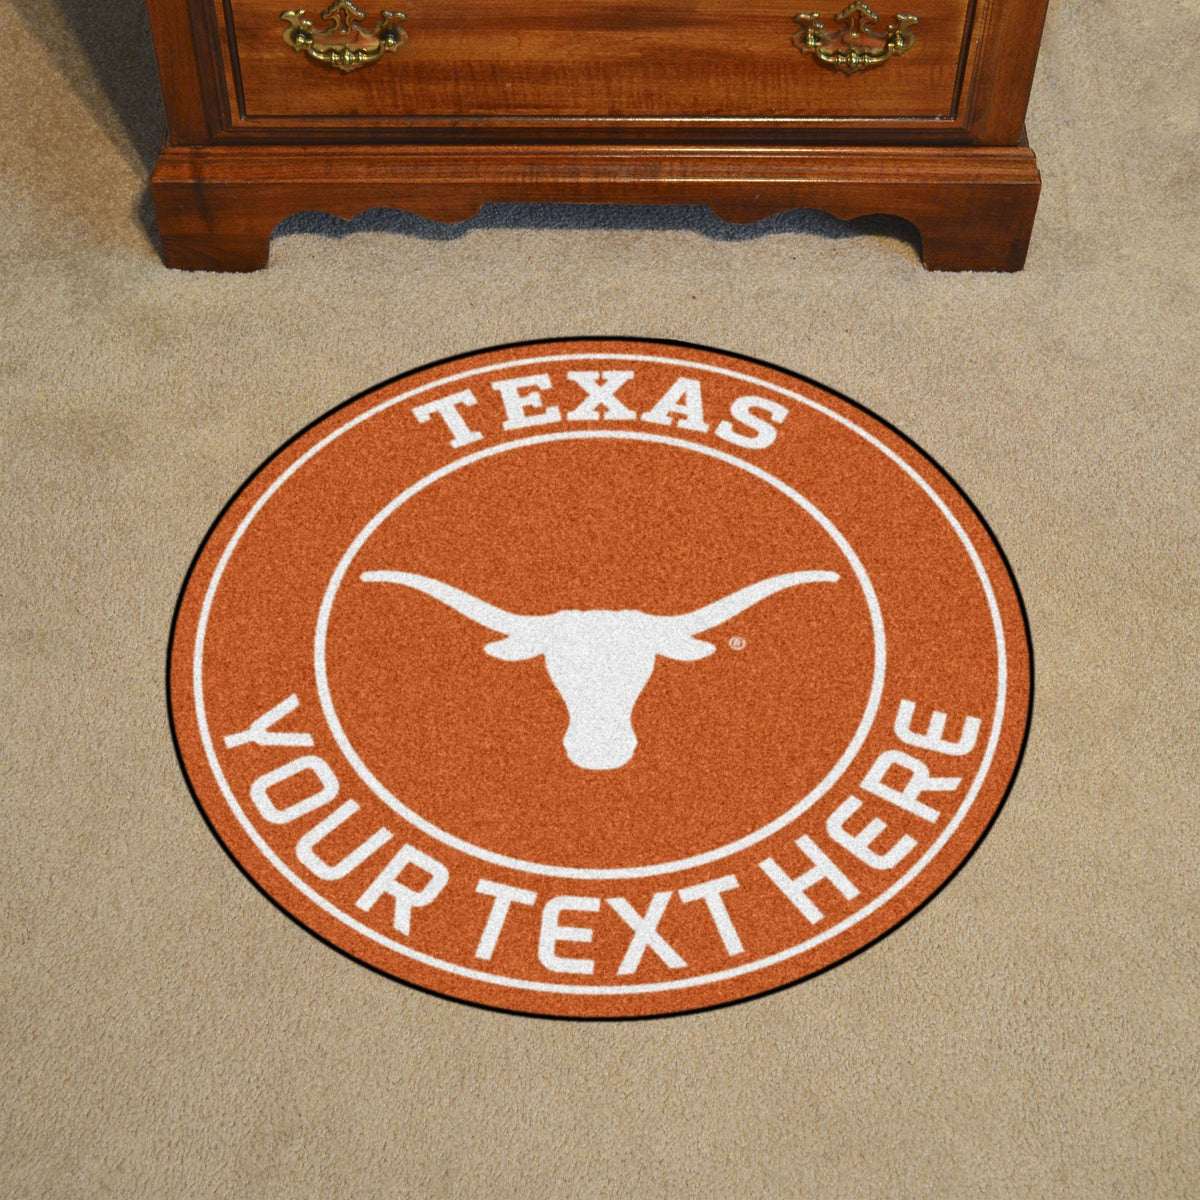 Collegiate Personalized Roundel Mat Personalized Roundel Mat Fan Mats University of Texas